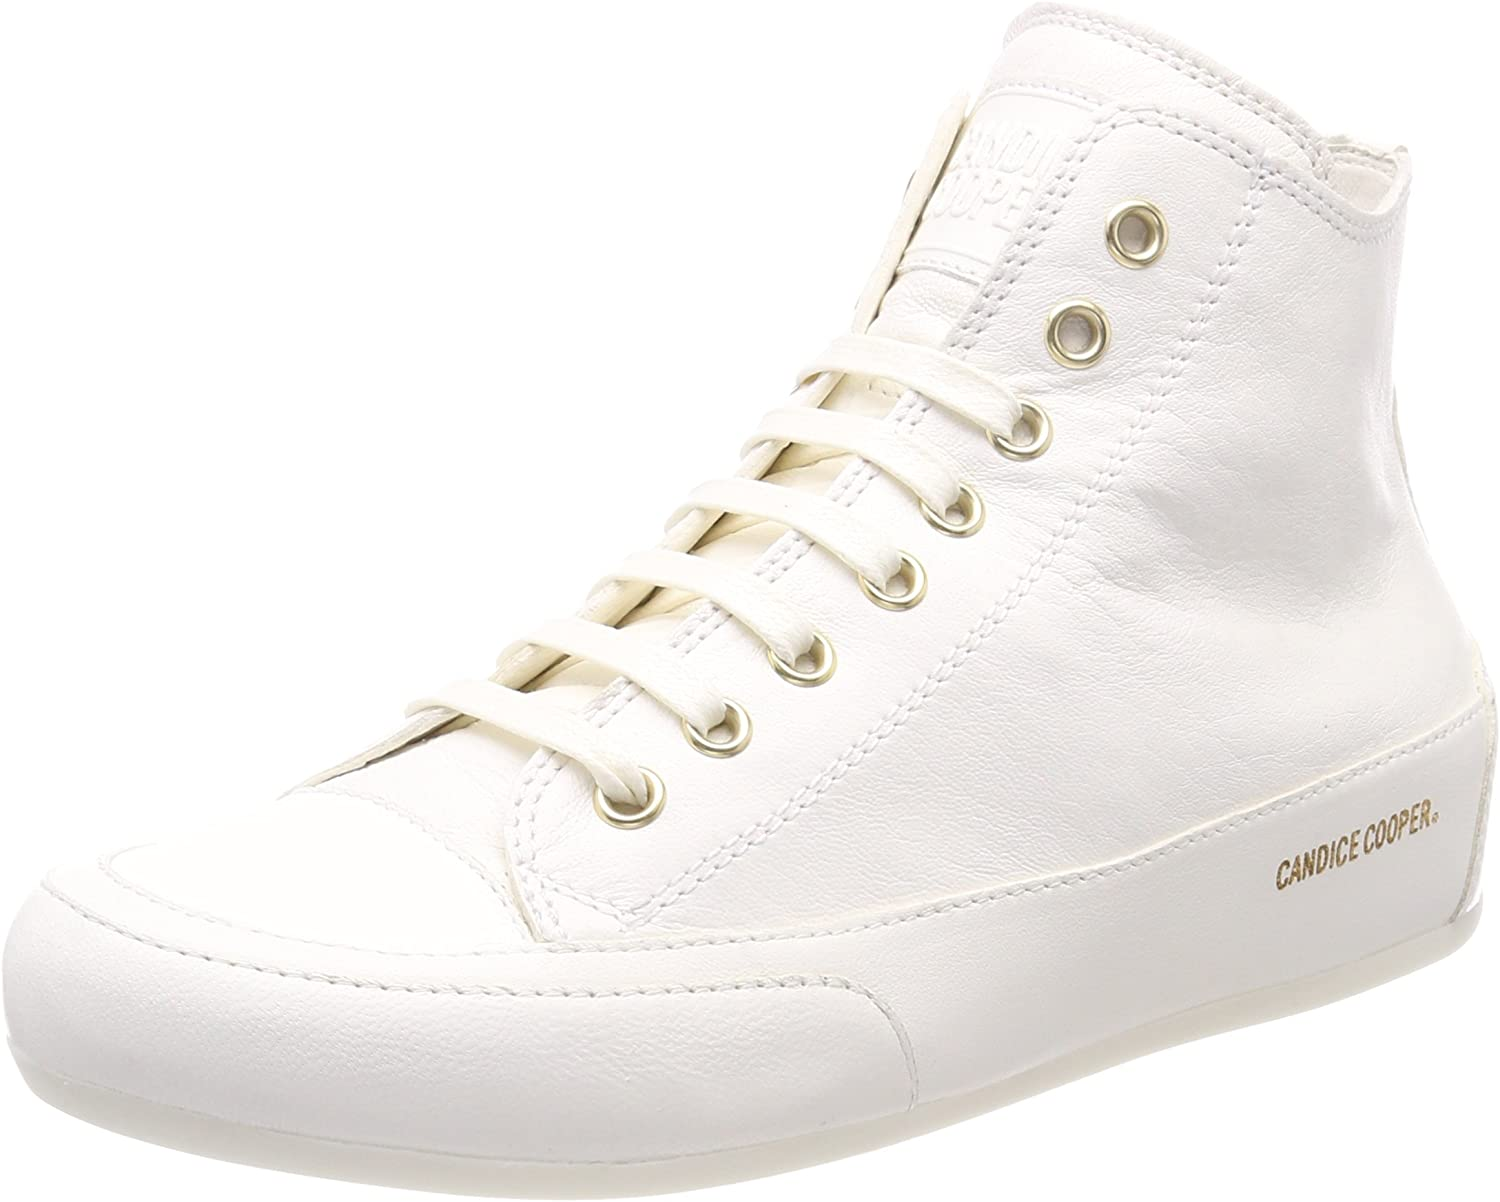 Candice Cooper Women's Allume Hi-Top Trainers